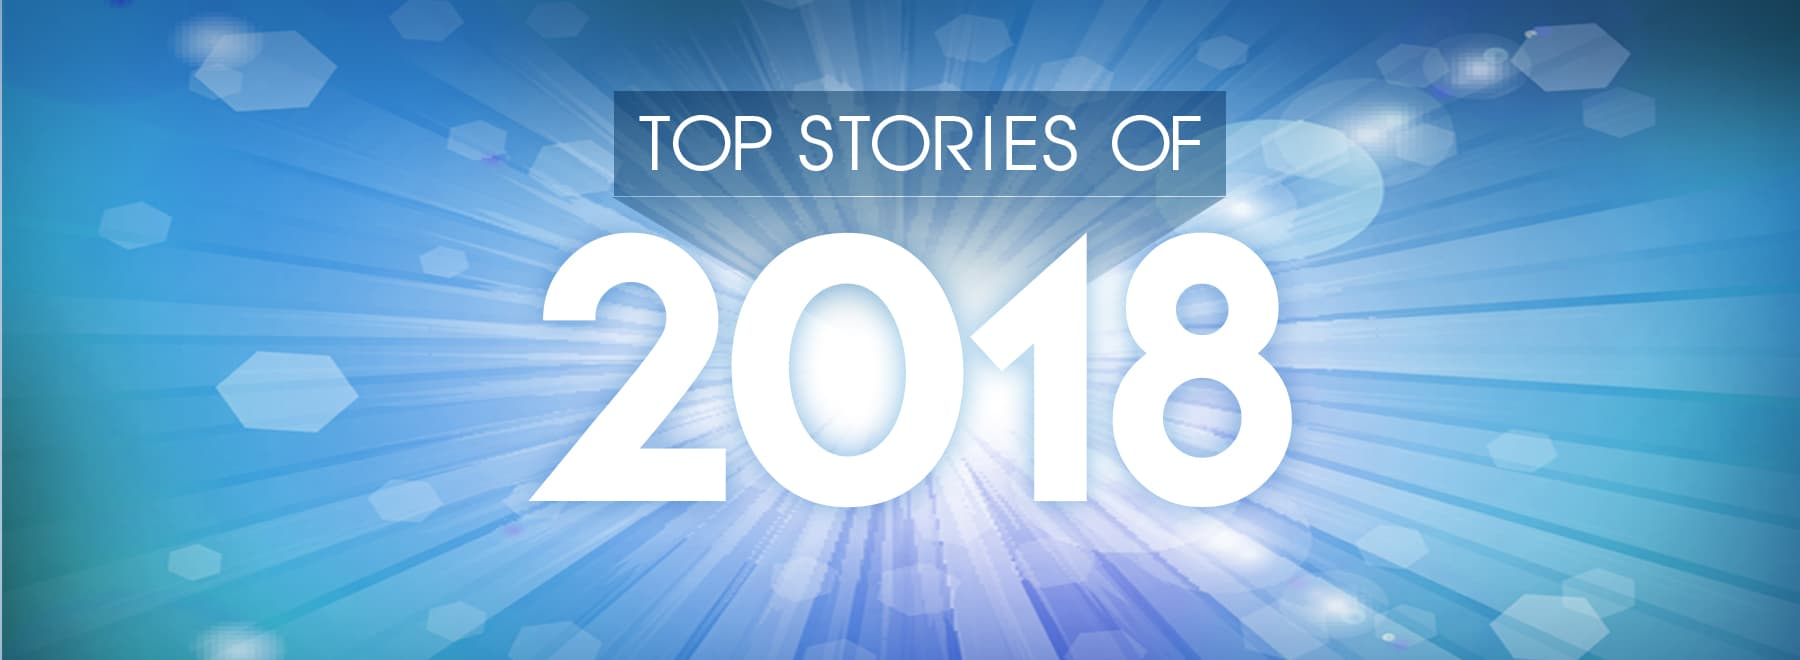 Firsts, records dot UMMC's 2018 top stories list